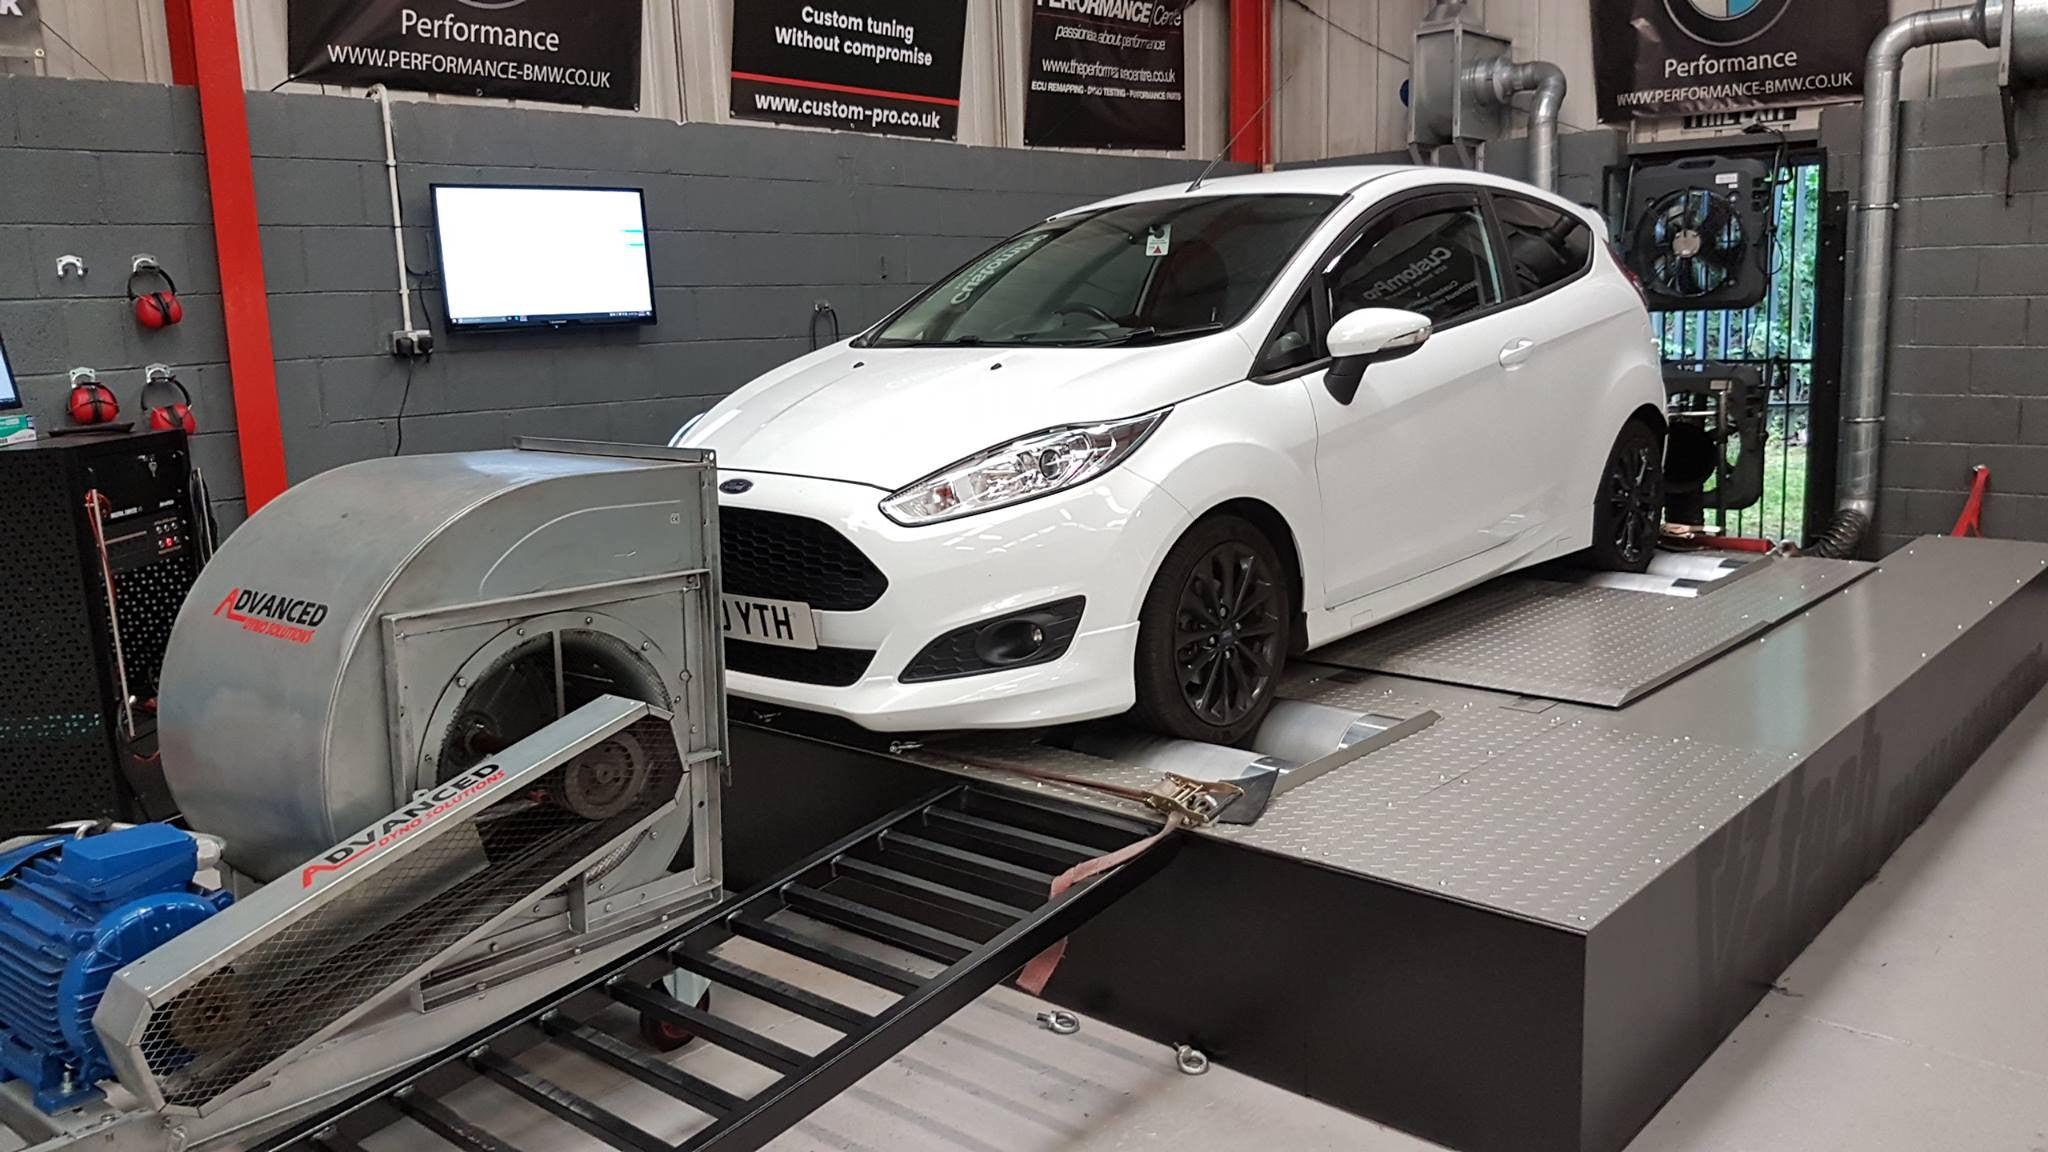 Ford Fiesta 1.6 TDCI - Stage 1 remap